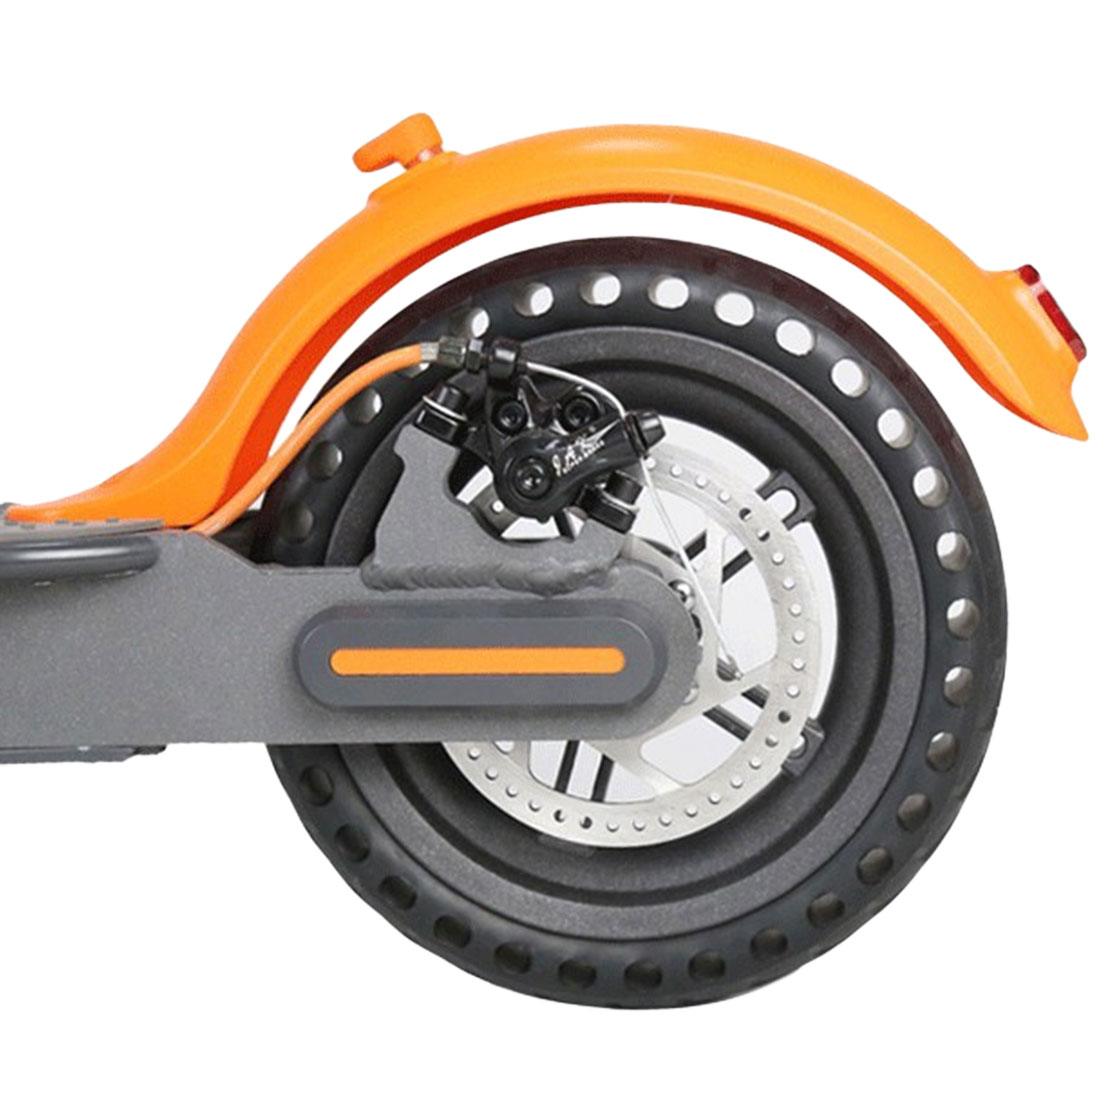 Pro Solid Hole Tires Shock Absorber Non Pneumatic Tyre Damping Rubber Tyres Wheels for Xiaomi Mijia M365 Scooter Skateboard